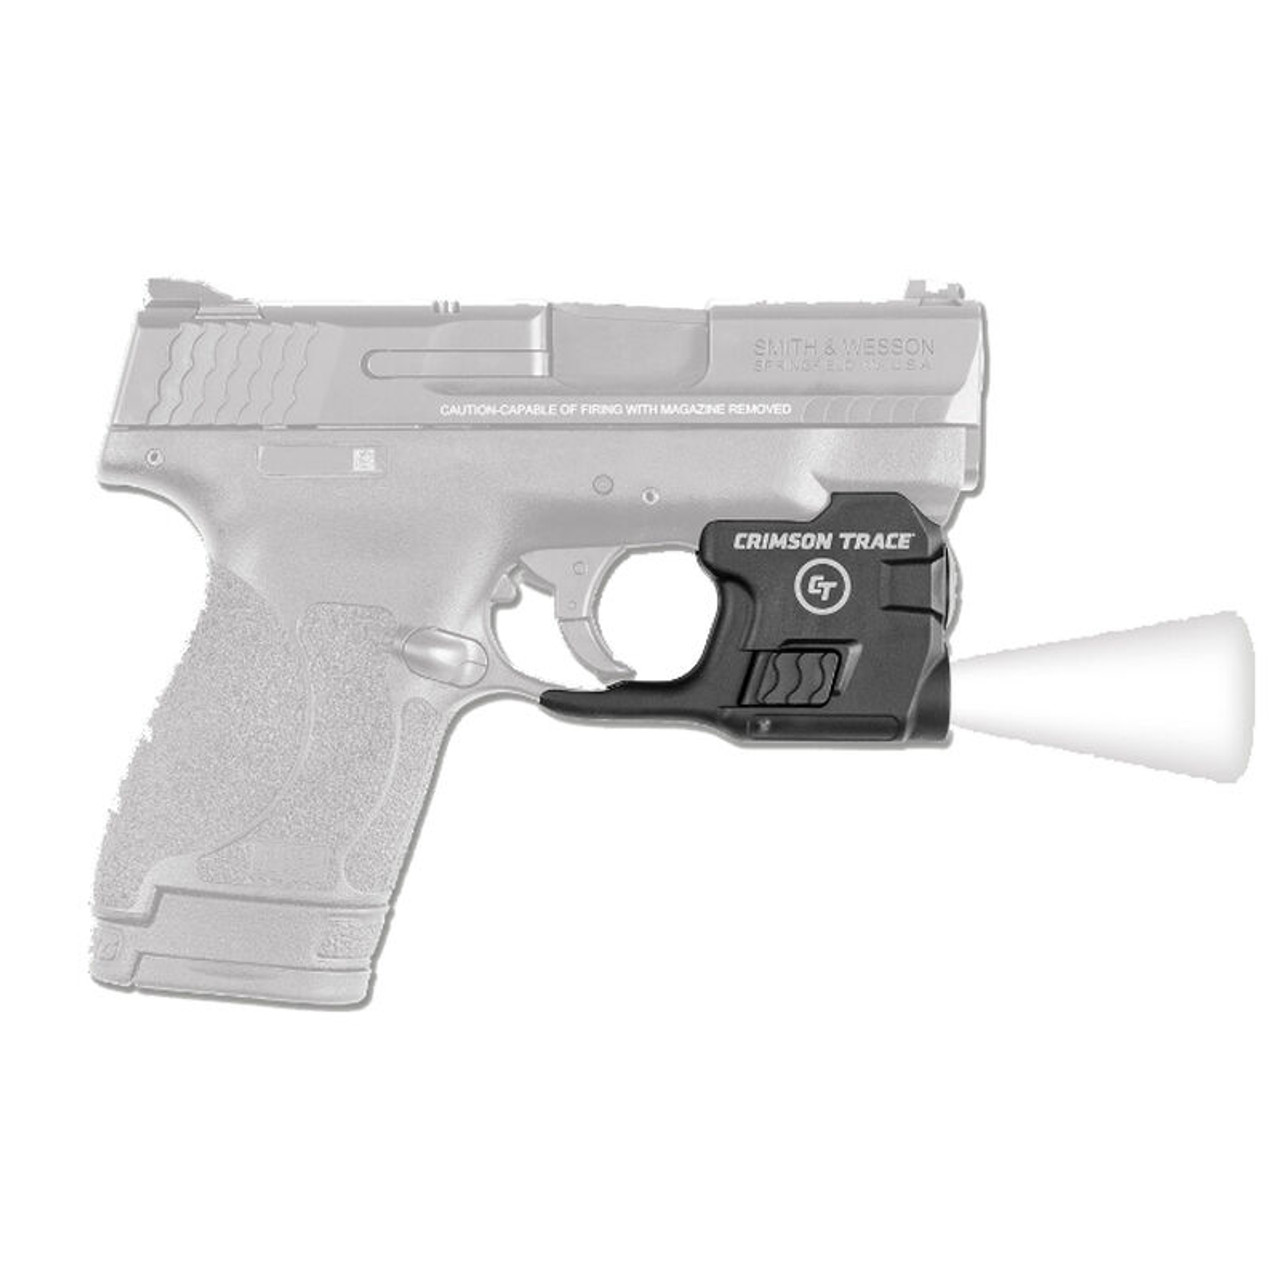 S&W M&P Shield With Crimson Trace Weapons Light CALIFORNIA LEGAL - 9mm